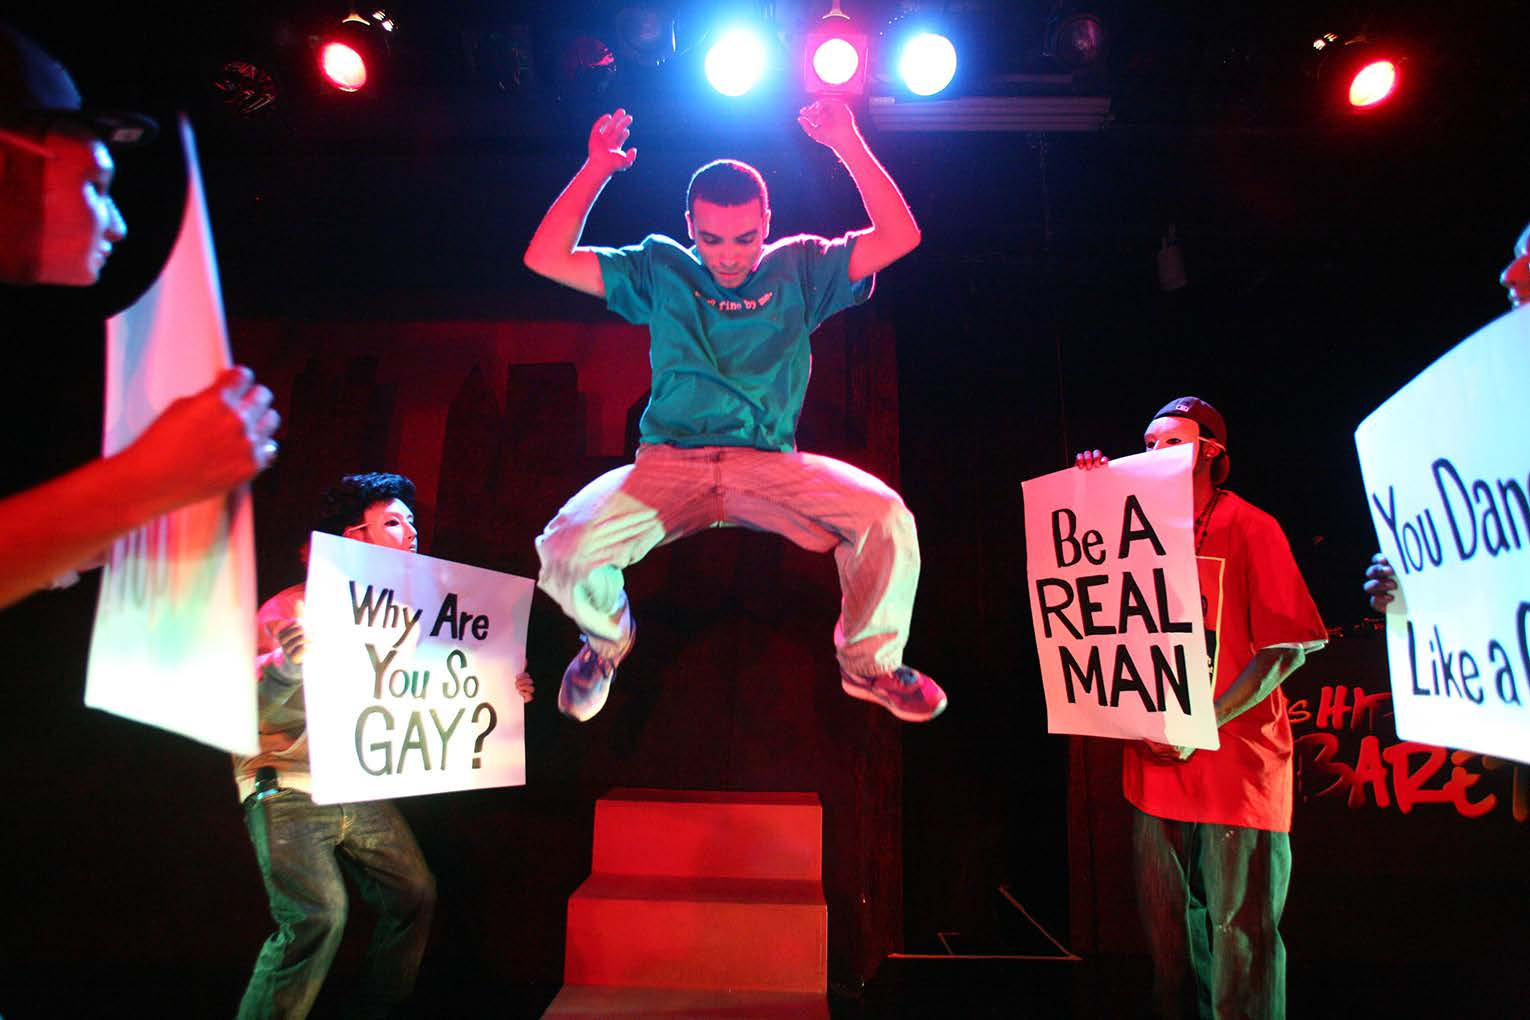 (Facing page) Jesse Vega (center) with ensemble in the All Stars Hip-Hop Cabaret #7, a devised production directed by Dan Friedman and Antoine Joyce at the Castillo Theatre, August 2009. (Photo by Ronald L. Glassman)